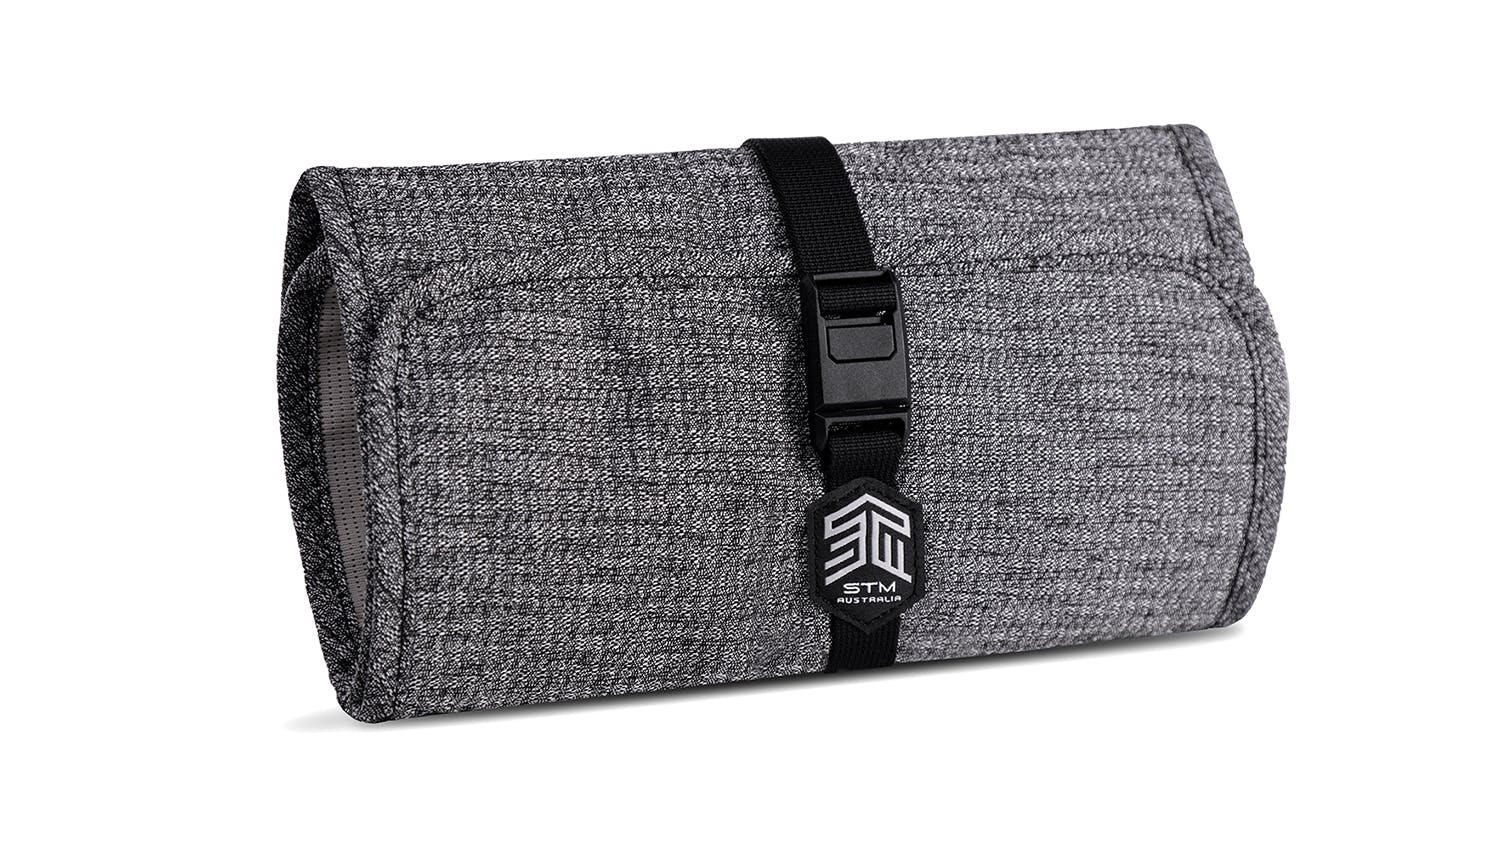 STM Dapper Wrapper Bag - Granite Black